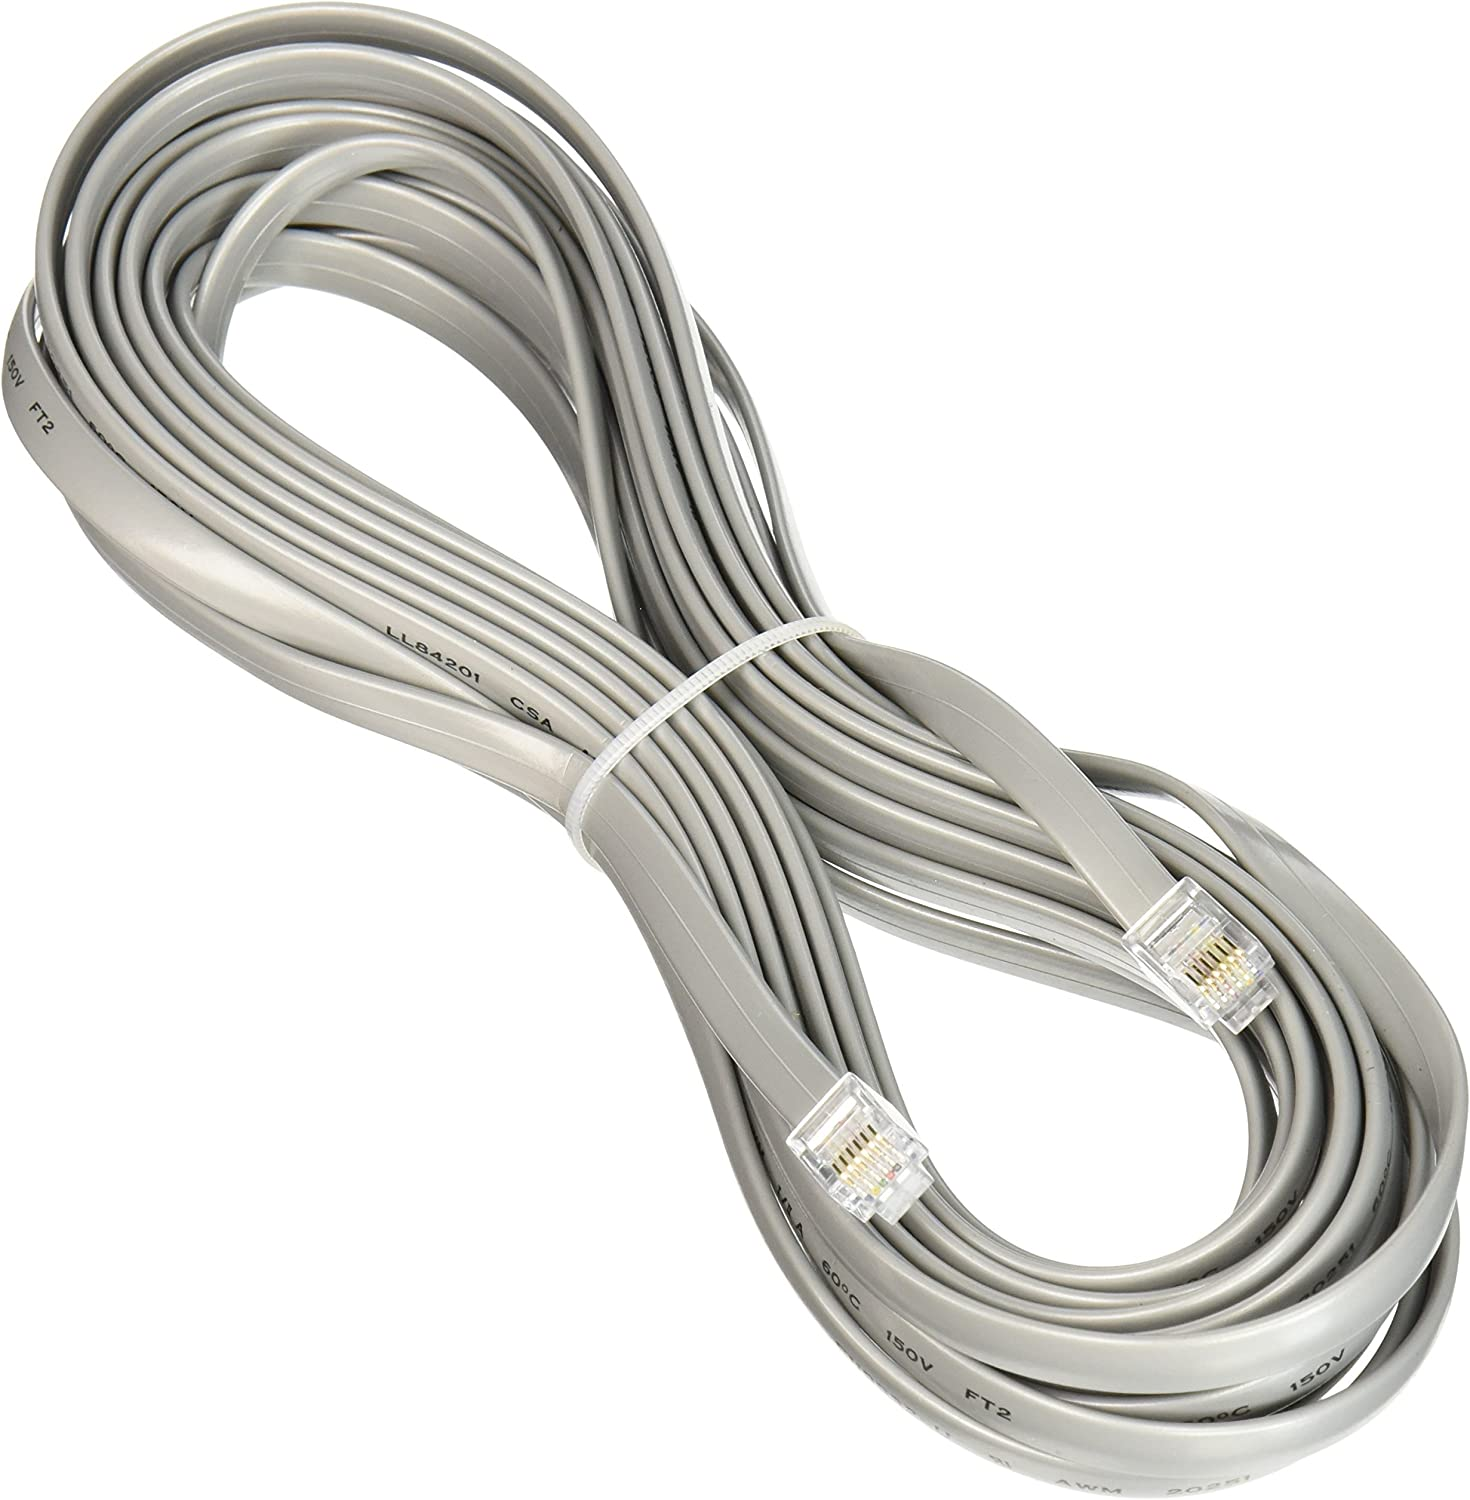 C2G 09593 RJ11 6P4C Straight Modular Cable Silver 50 Feet, 15.24 Meters